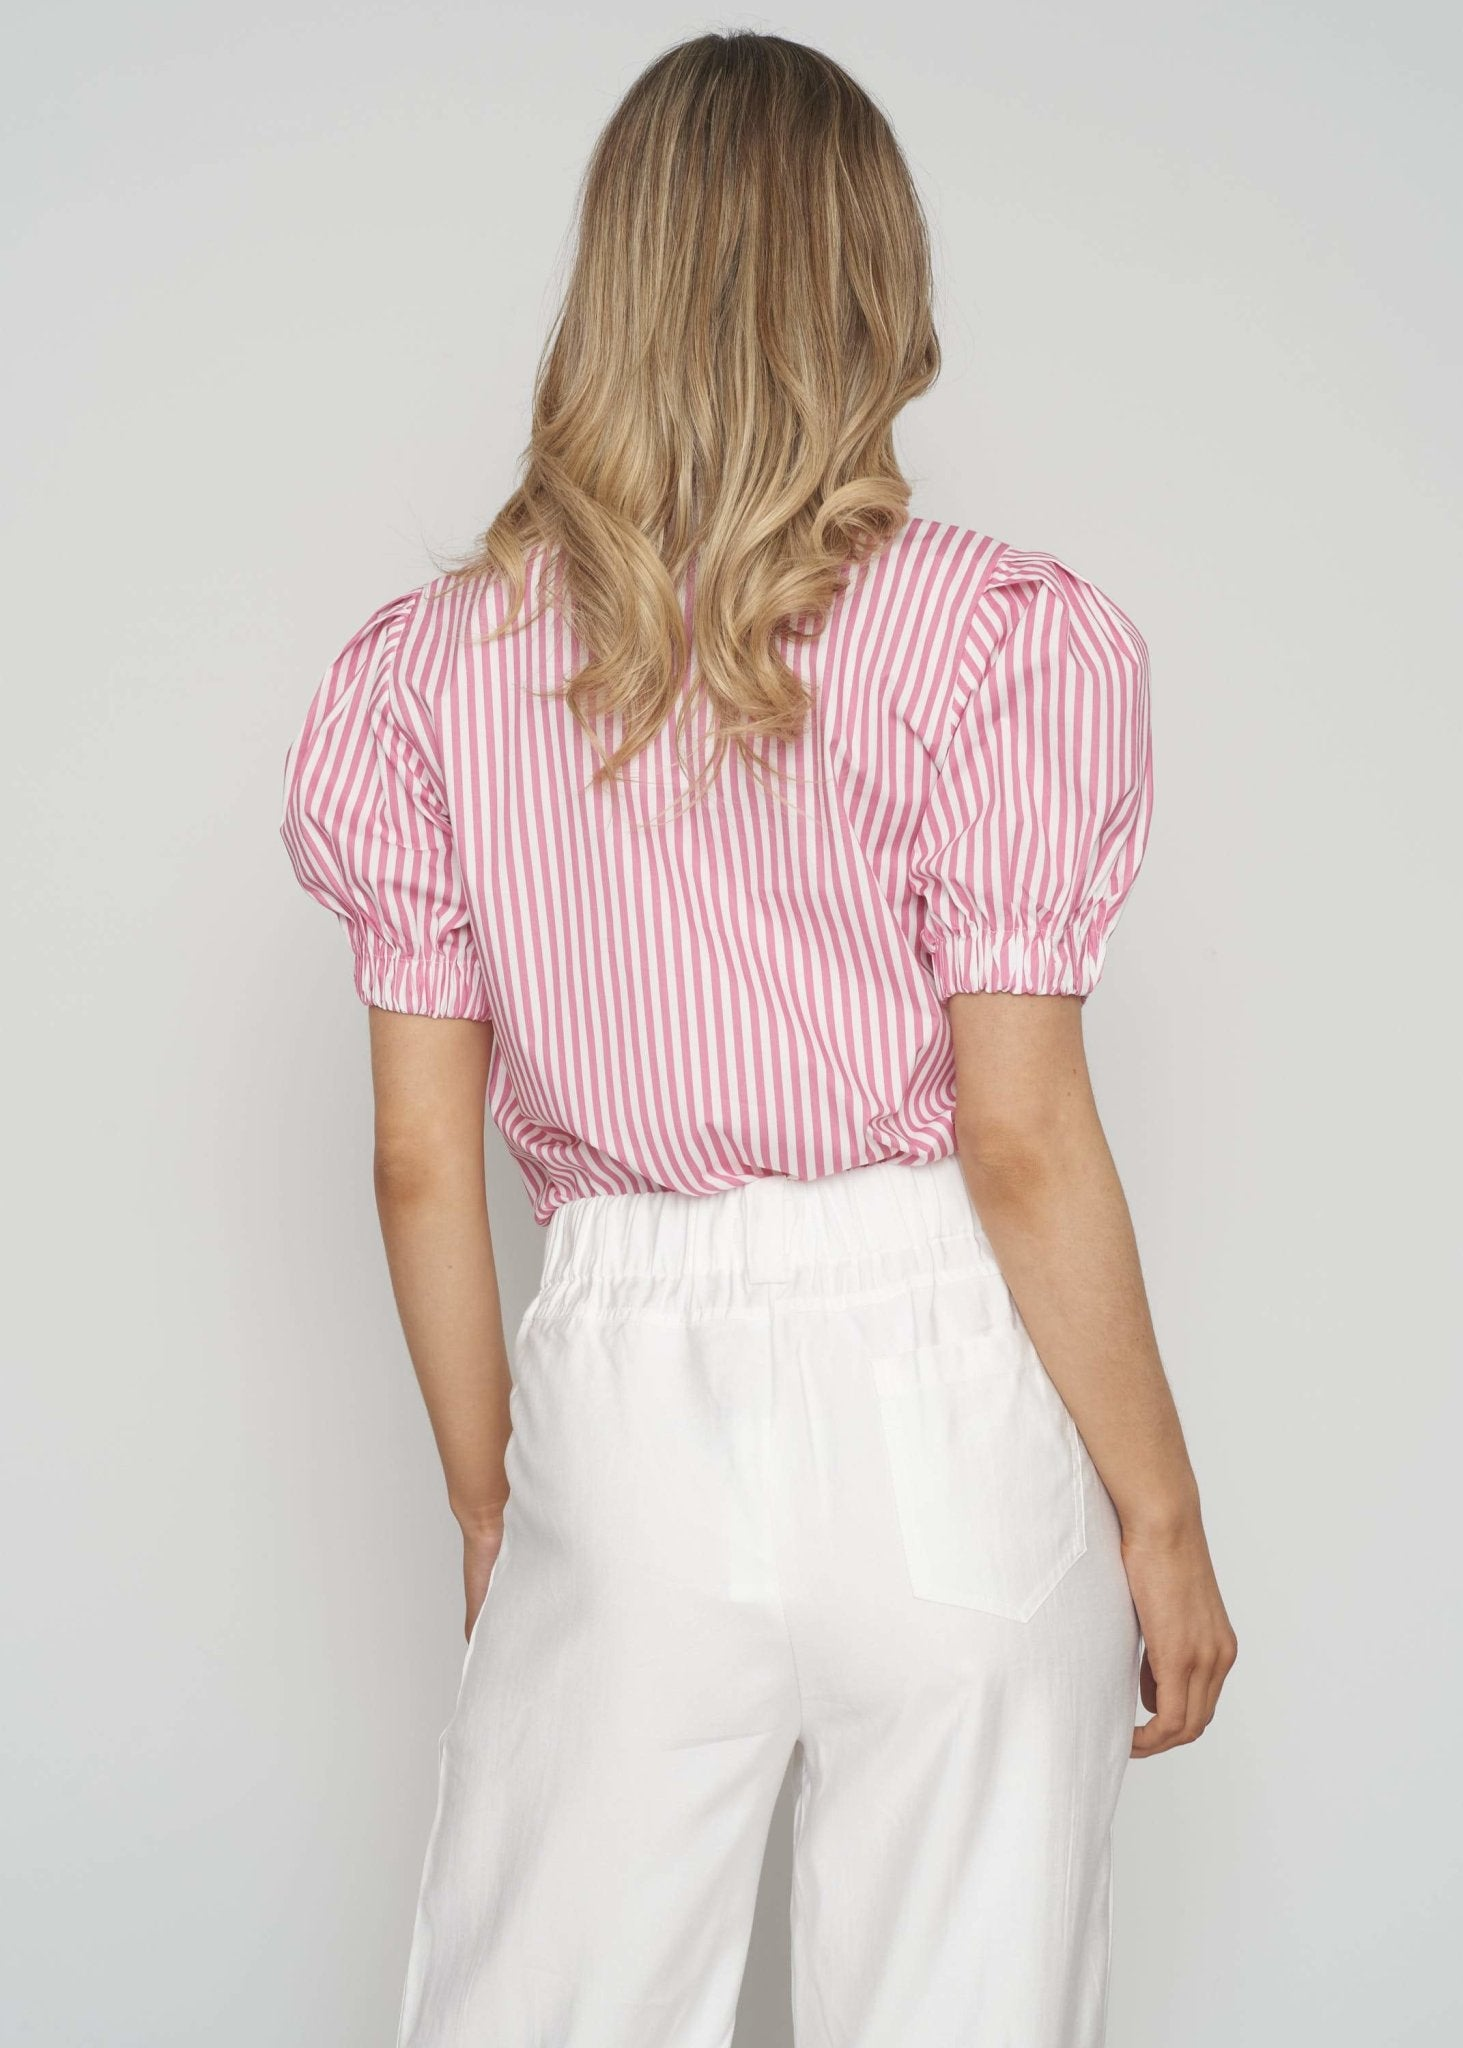 Polly Stripe Blouse In Pink - The Walk in Wardrobe